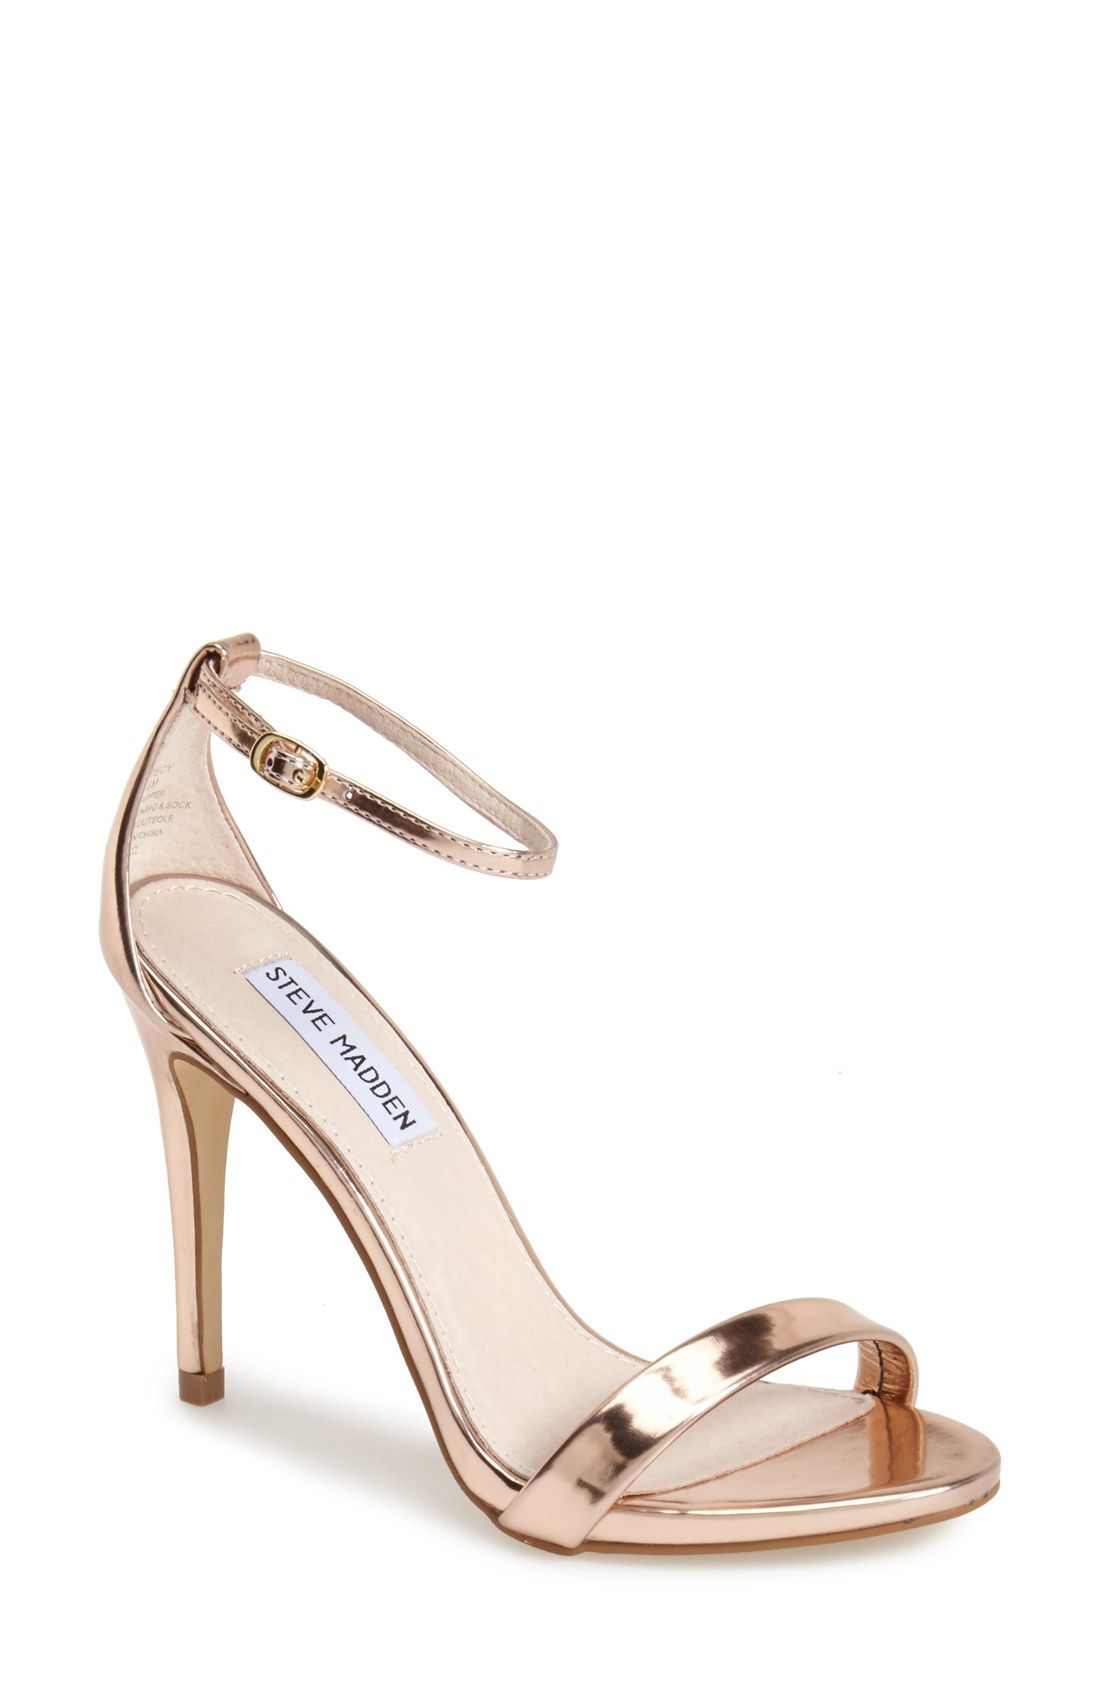 Love these gorgeous rose gold Steve Madden sandals. ...... Also, Go to RMR 4 awesome news!! ...  RMR4 INTERNATIONAL.INFO  ... Register for our Product Line Showcase Webinar  at:  www.rmr4international.info/500_tasty_diabetic_recipes.htm    ... Don't miss it!